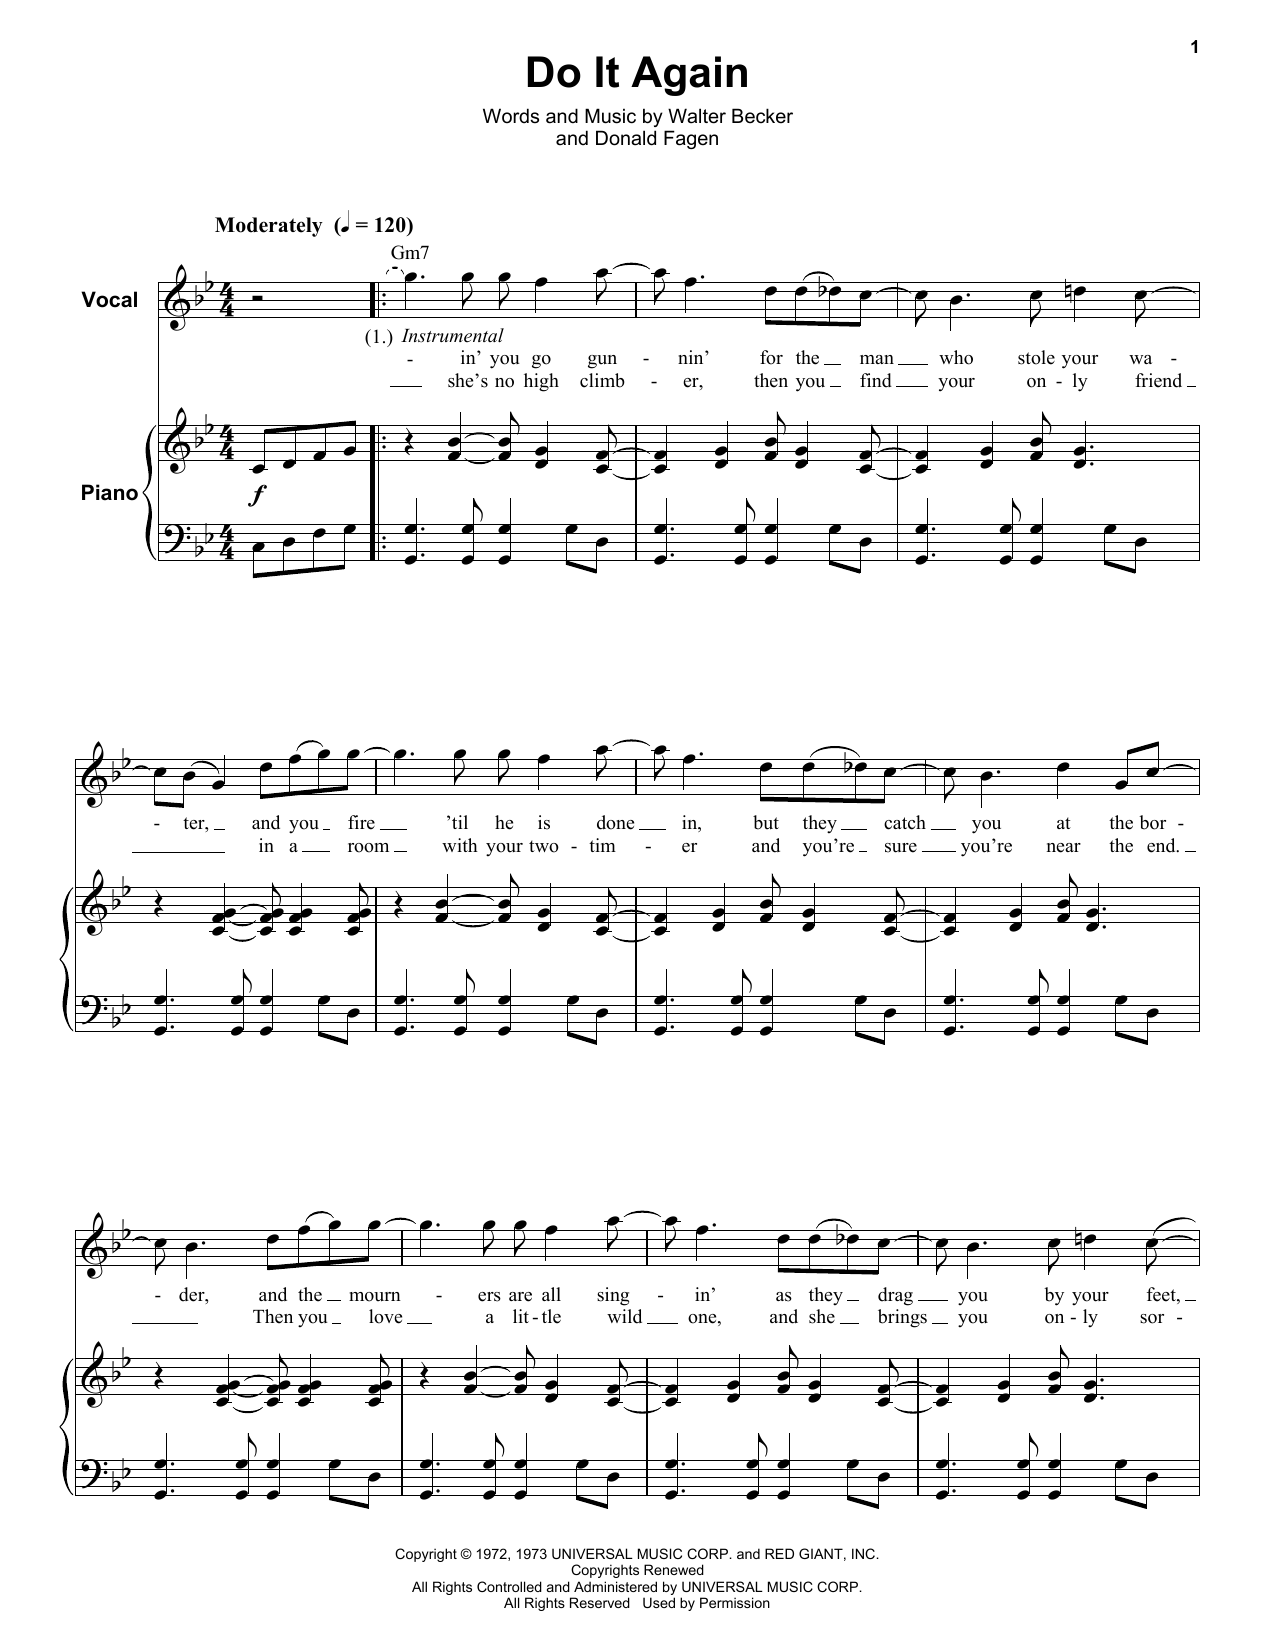 Do It Again Sheet Music